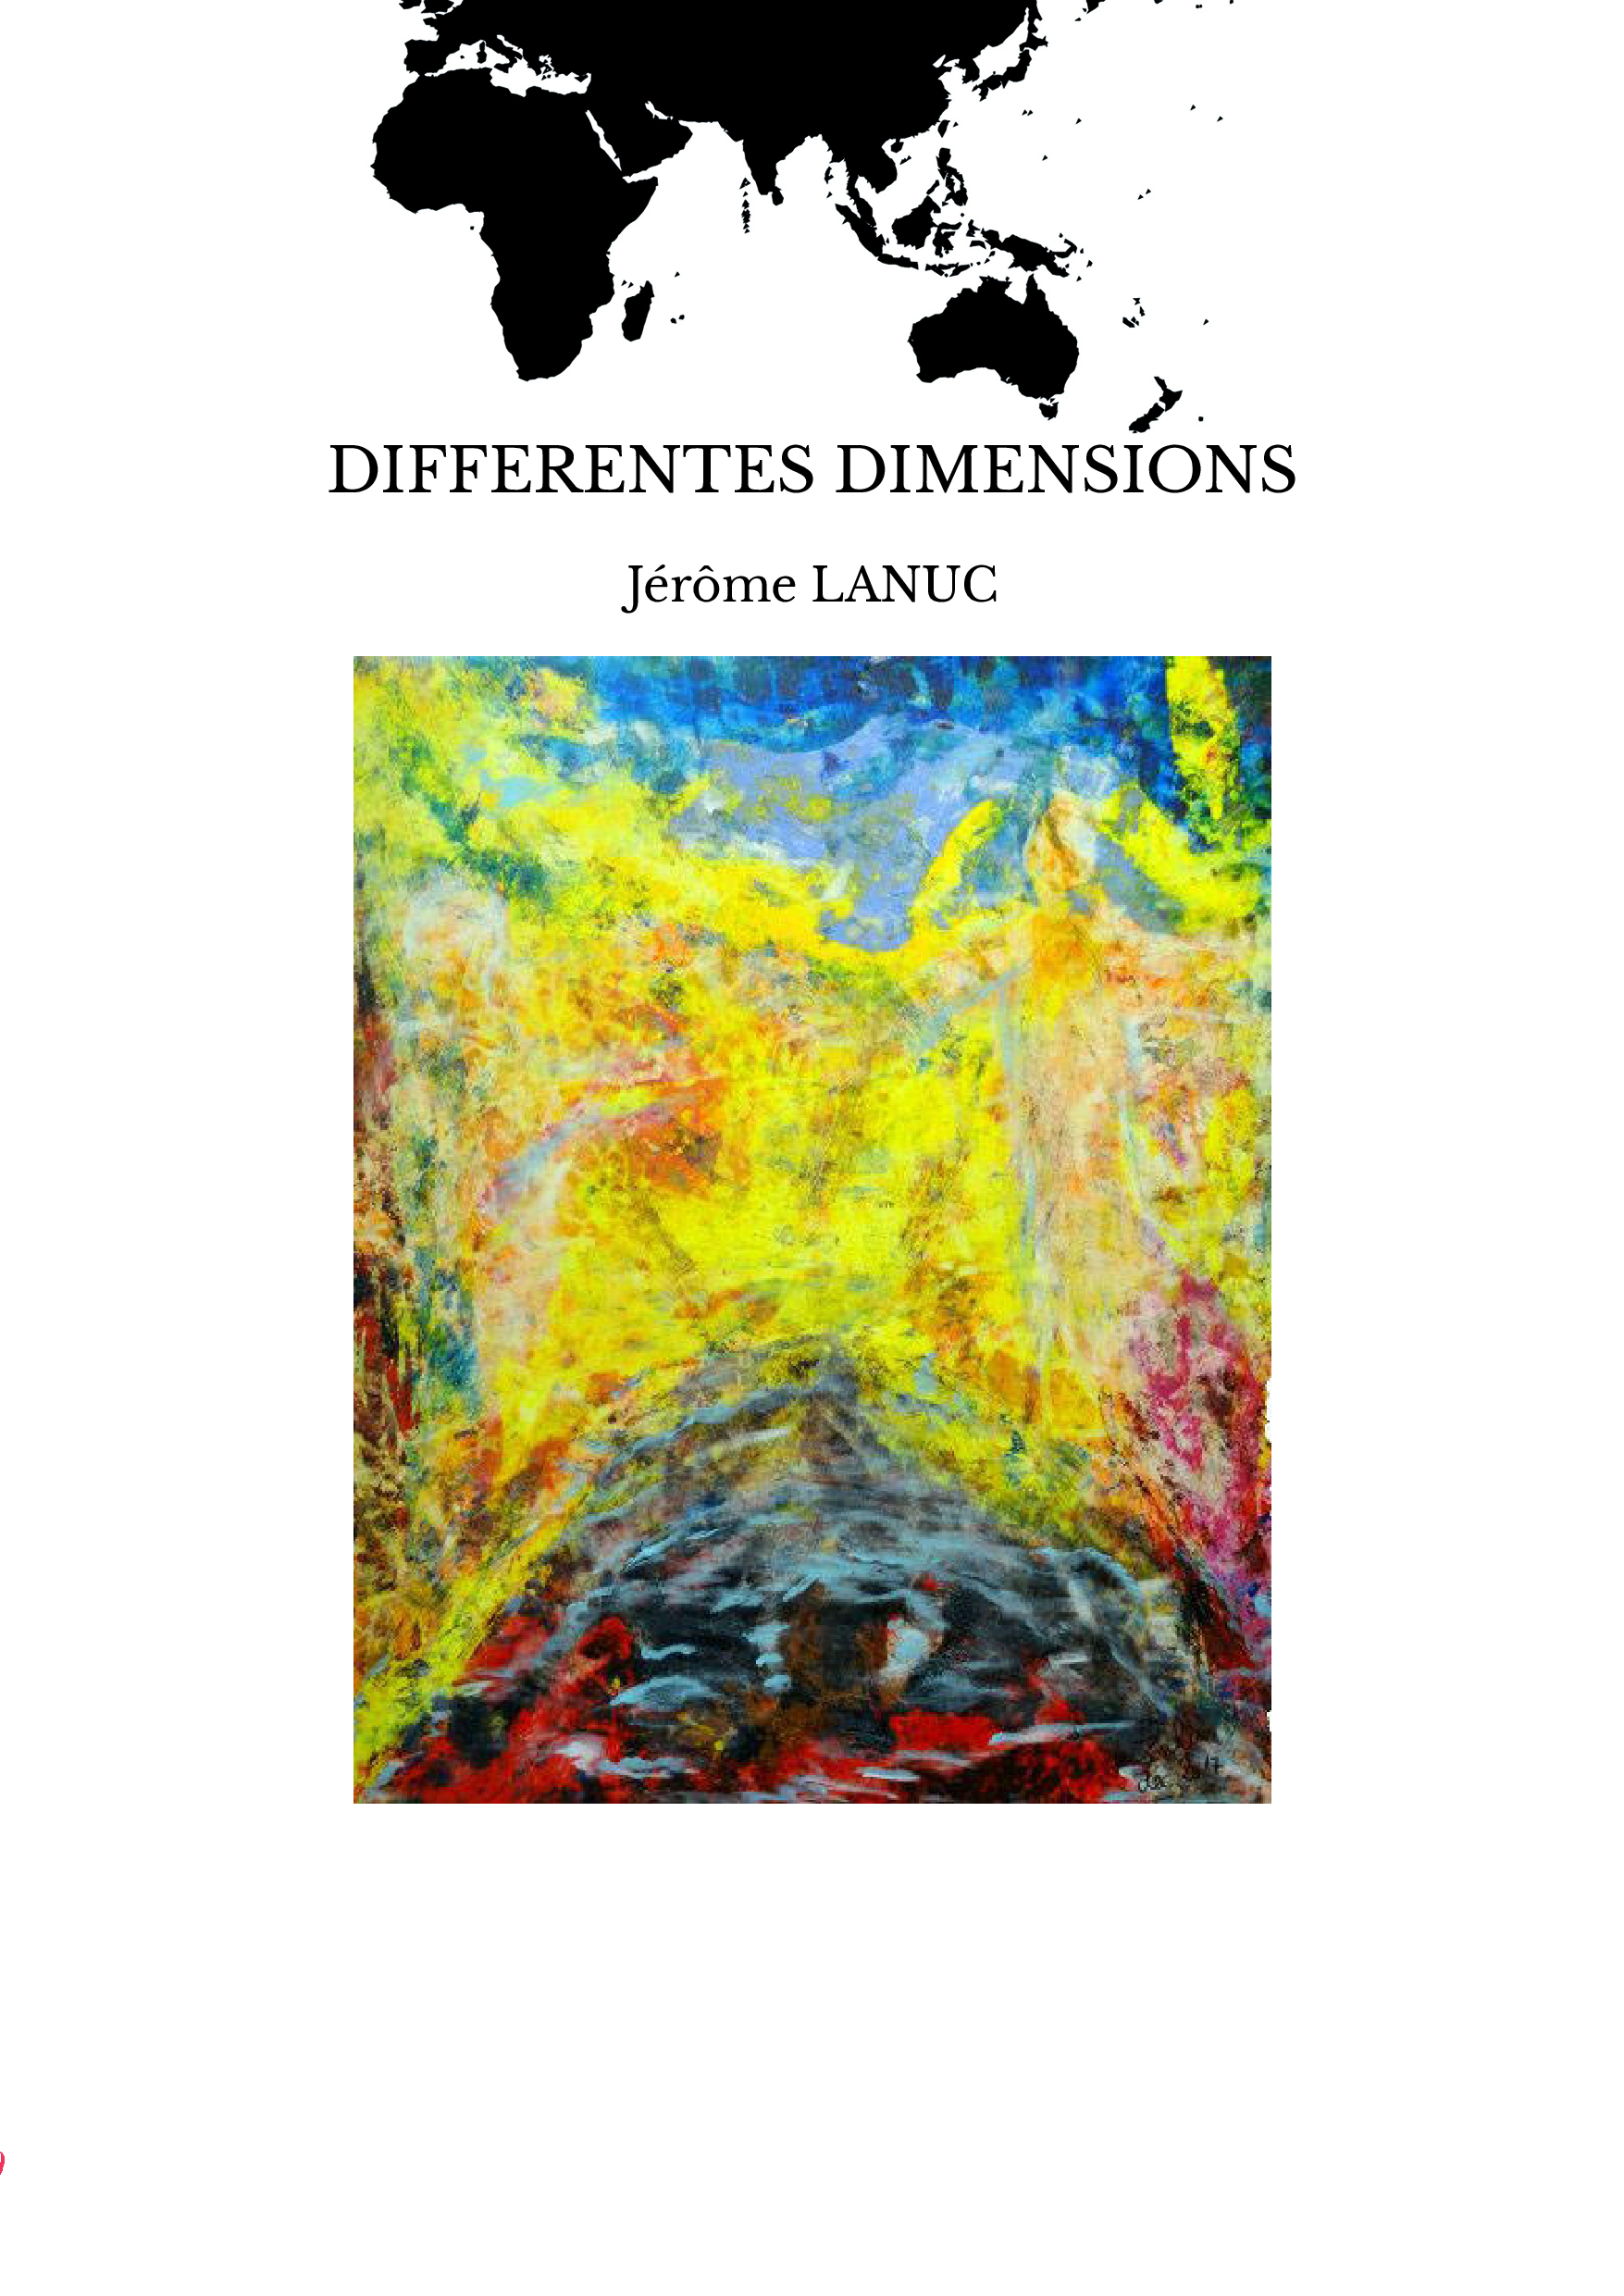 DIFFERENTES DIMENSIONS